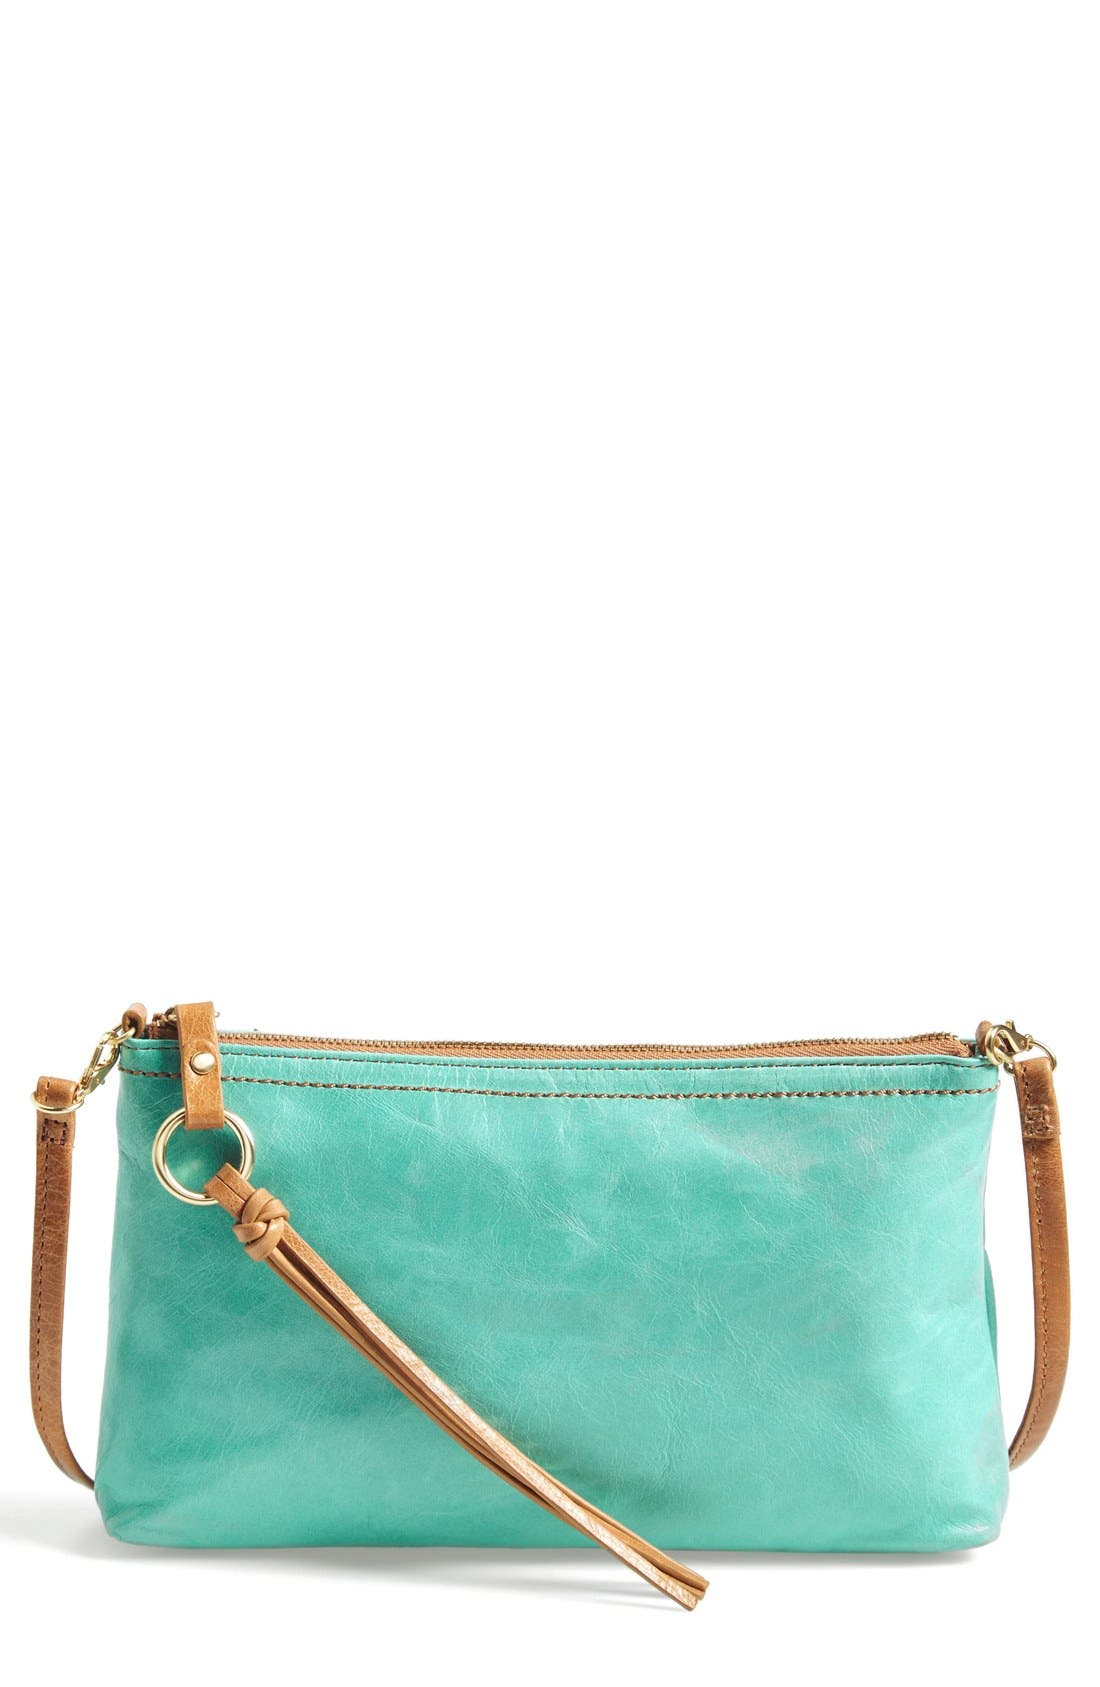 'Darcy' Leather Crossbody Bag,                             Main thumbnail 19, color,